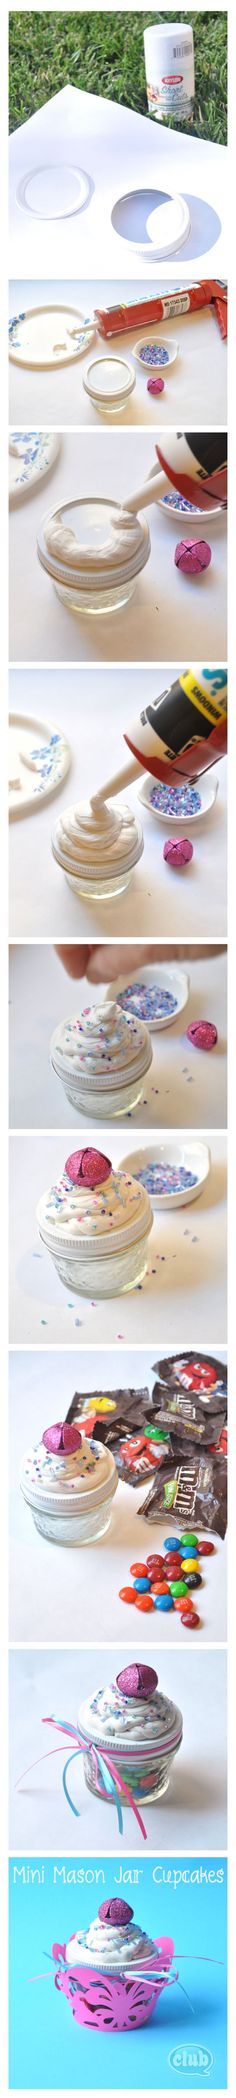 DIY Mason jar cupcakes! Cute and so easy!